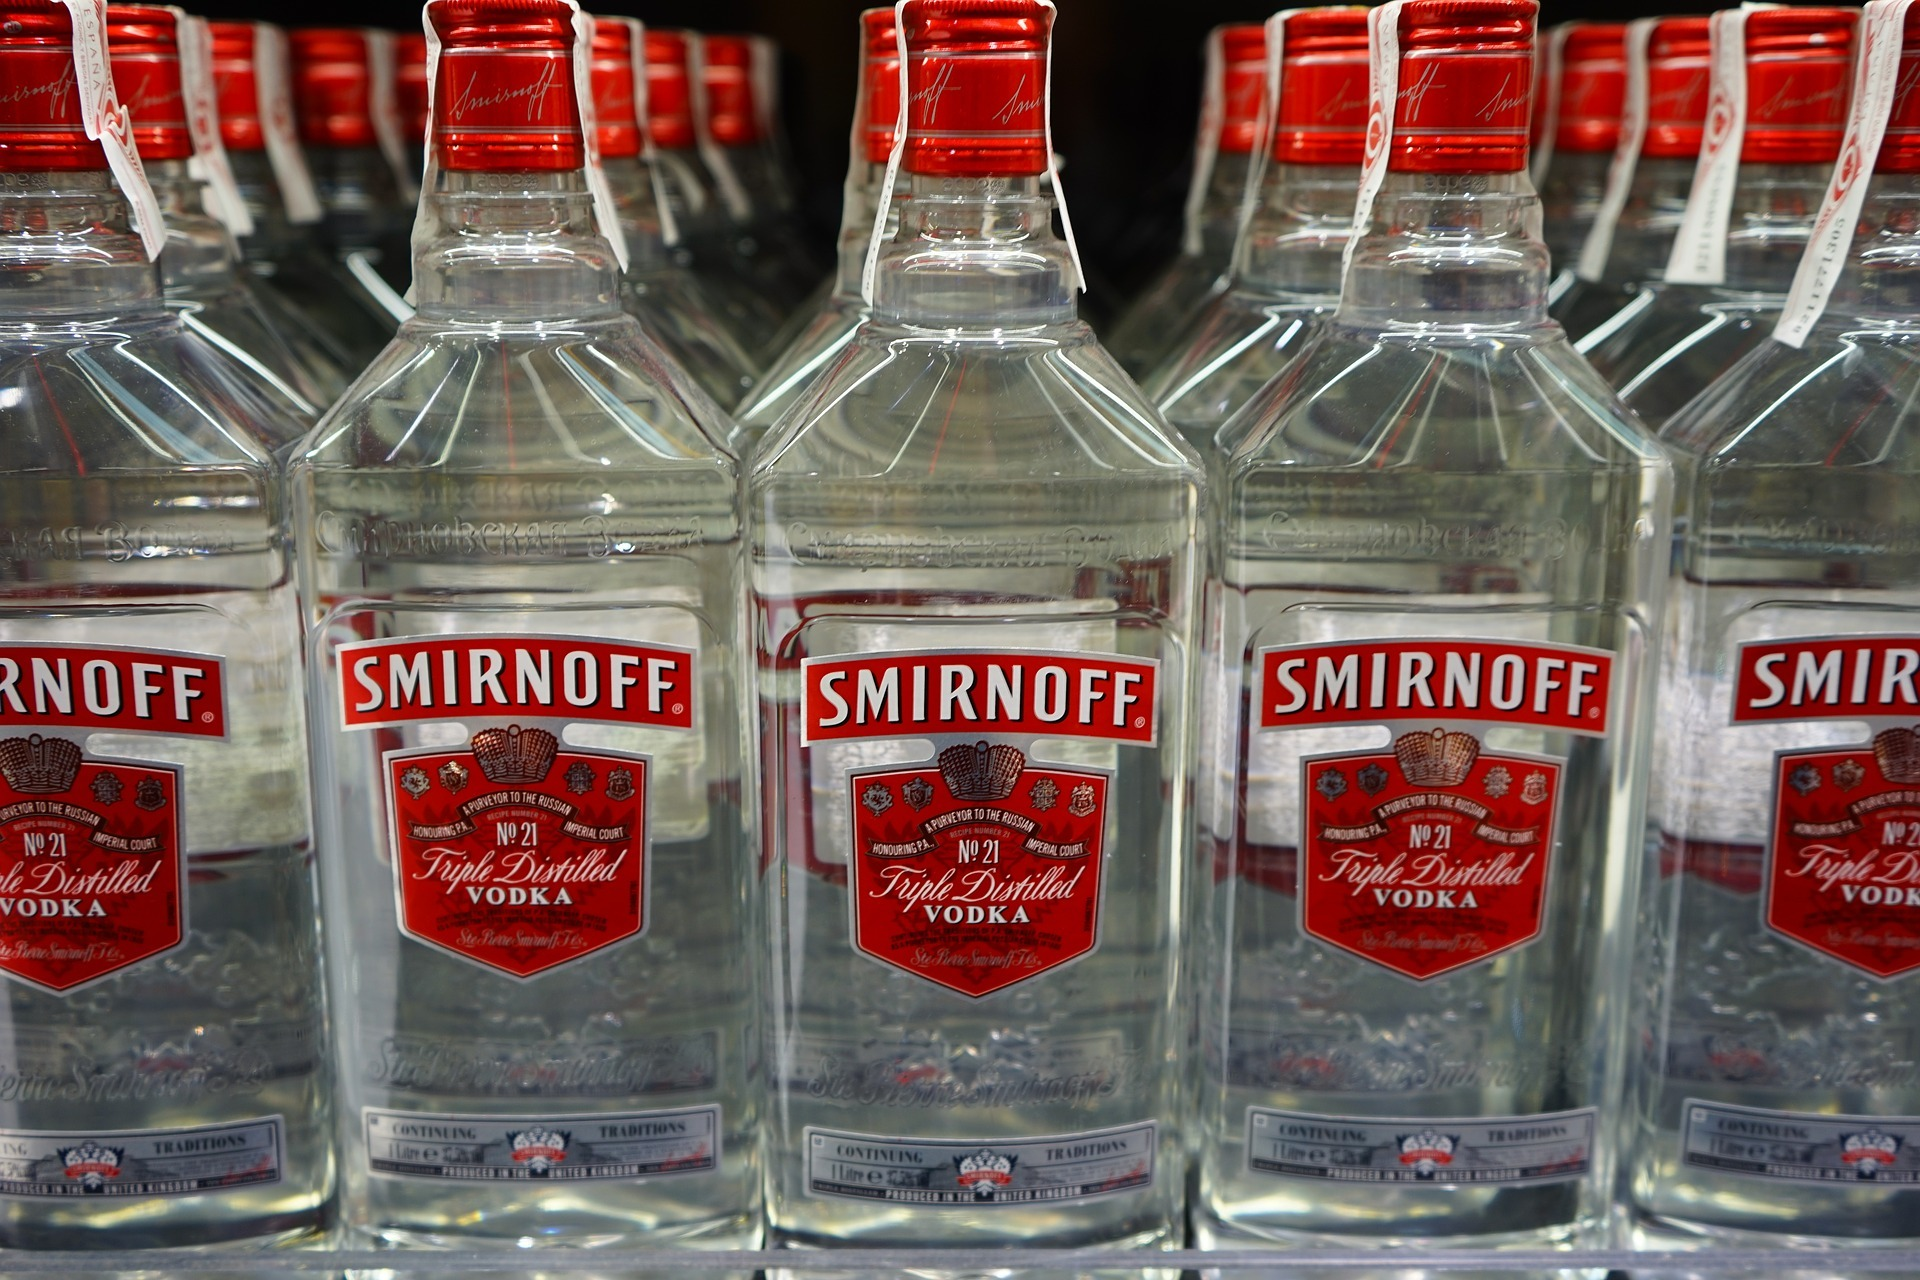 Two arrested on suspicion of stealing large quantity of vodka